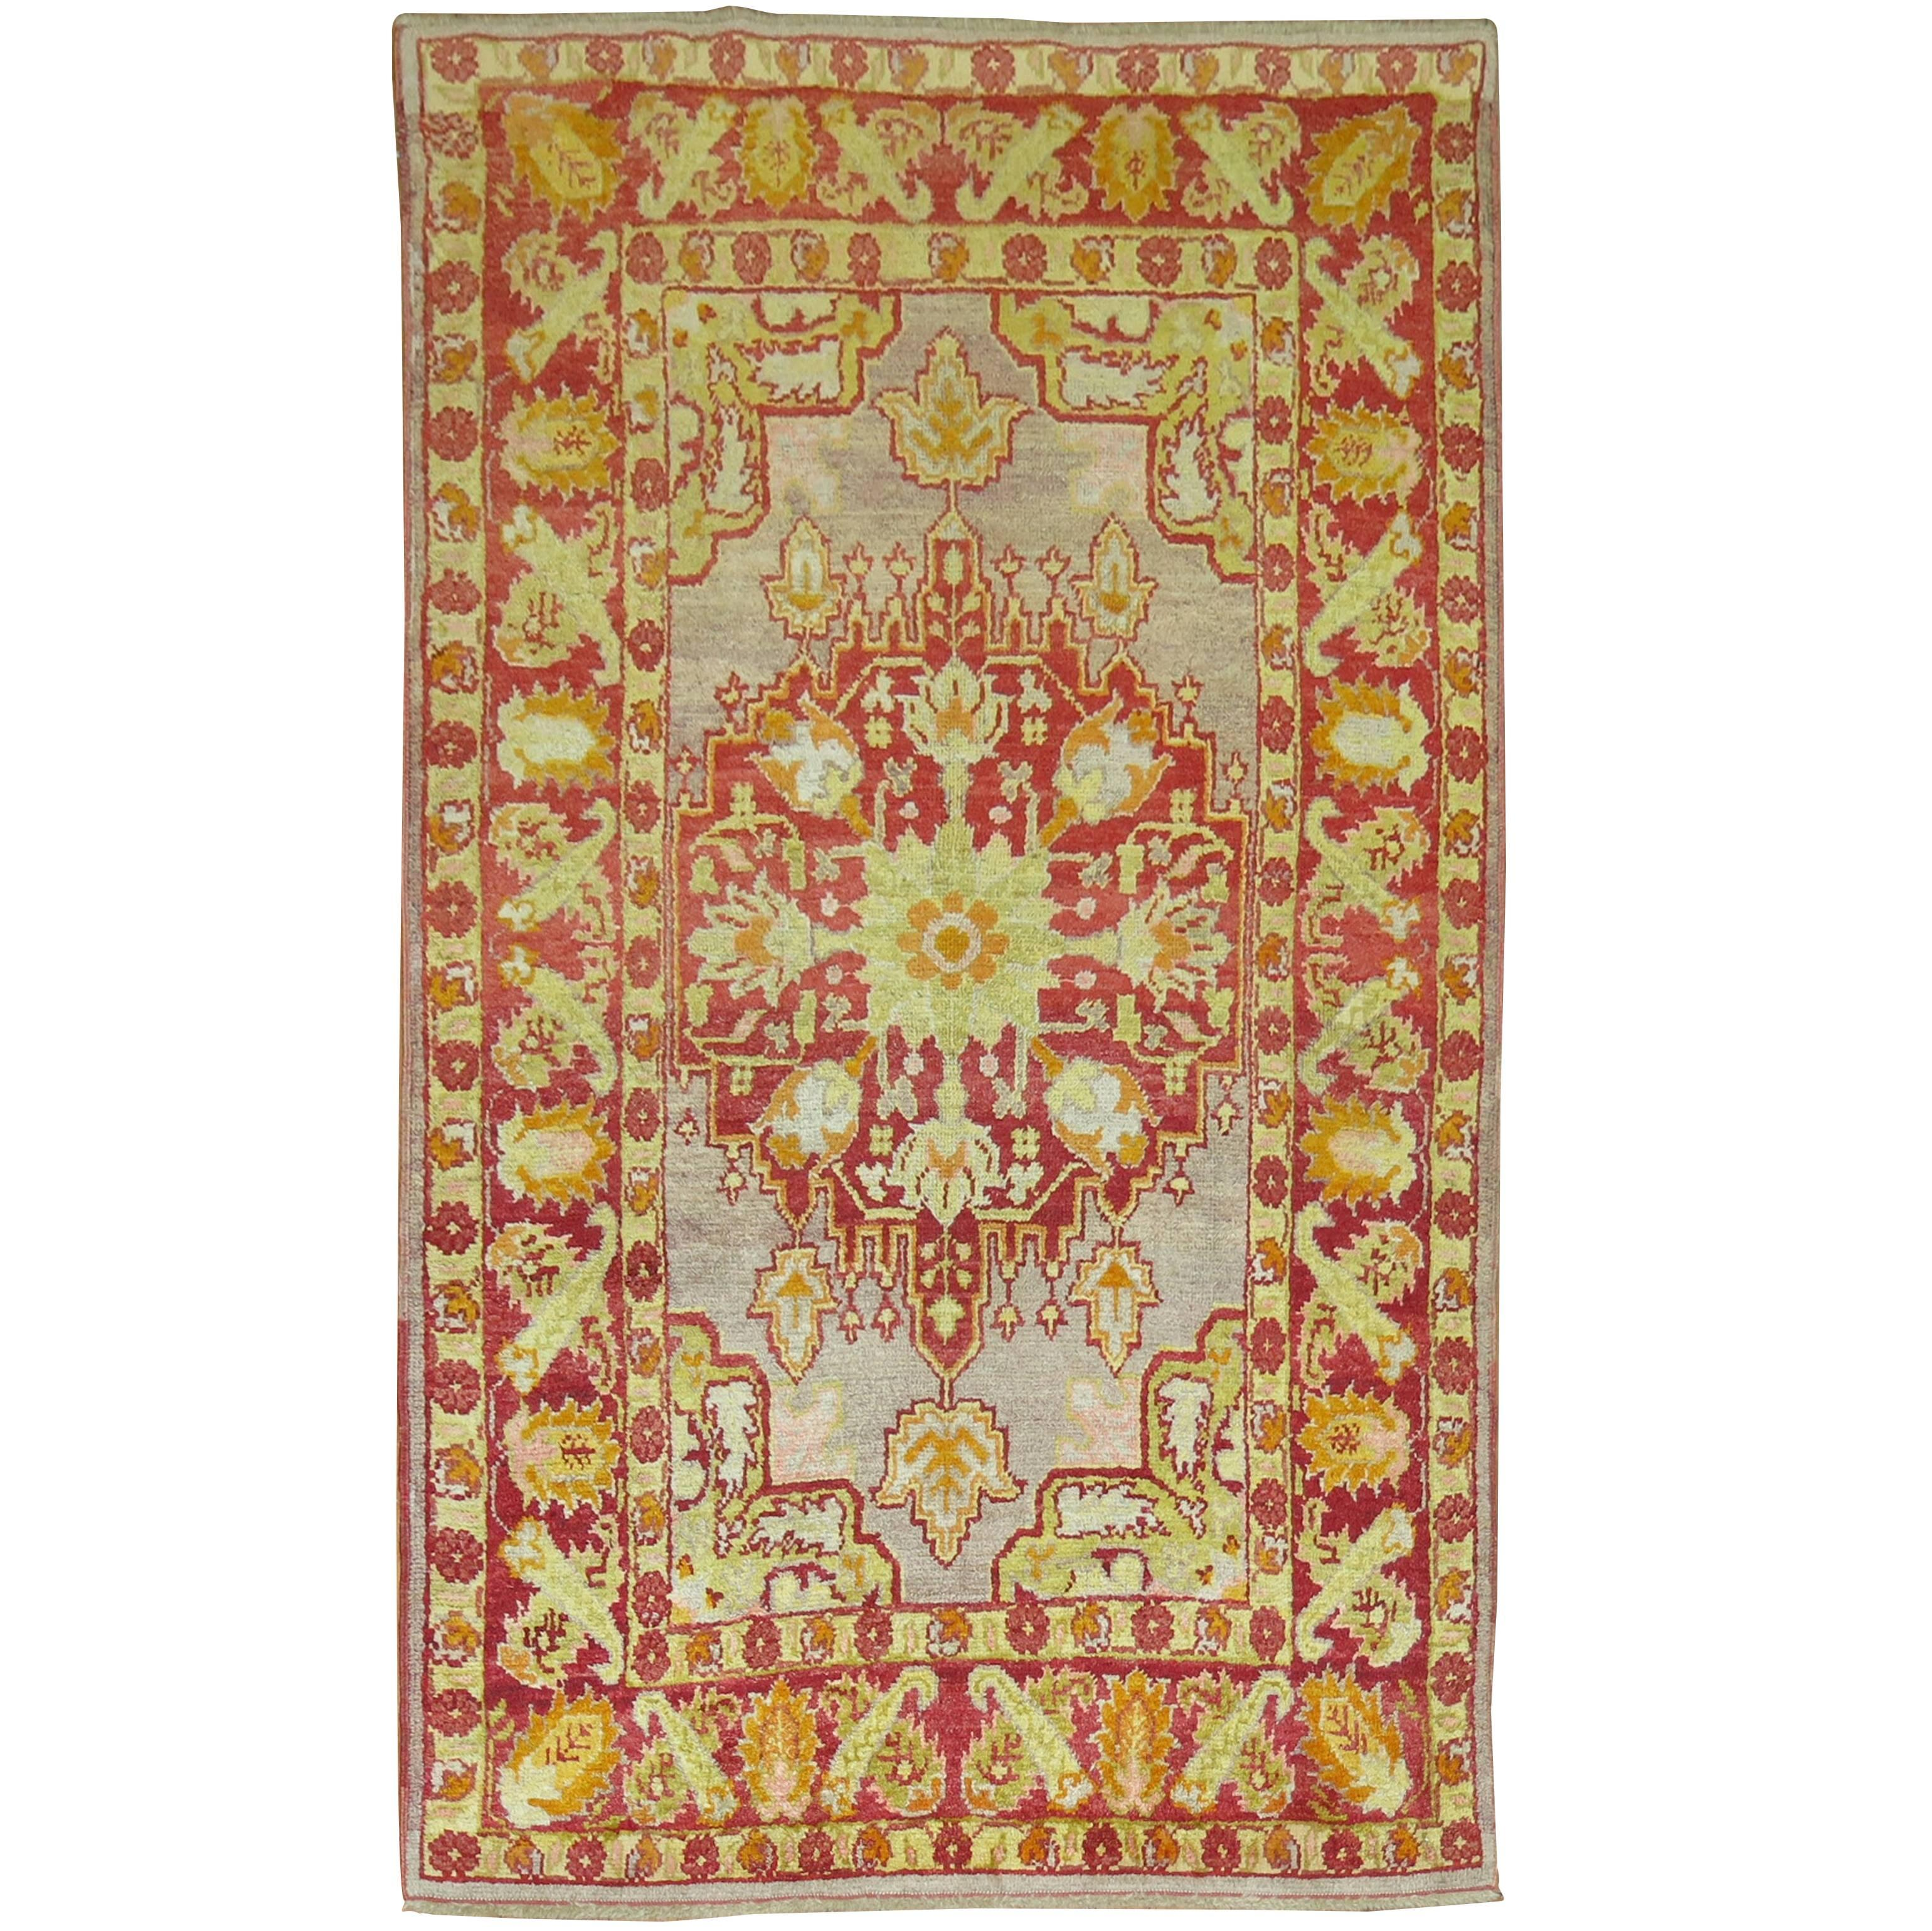 Antique Turkish Oushak Rug with Lime Green Accents